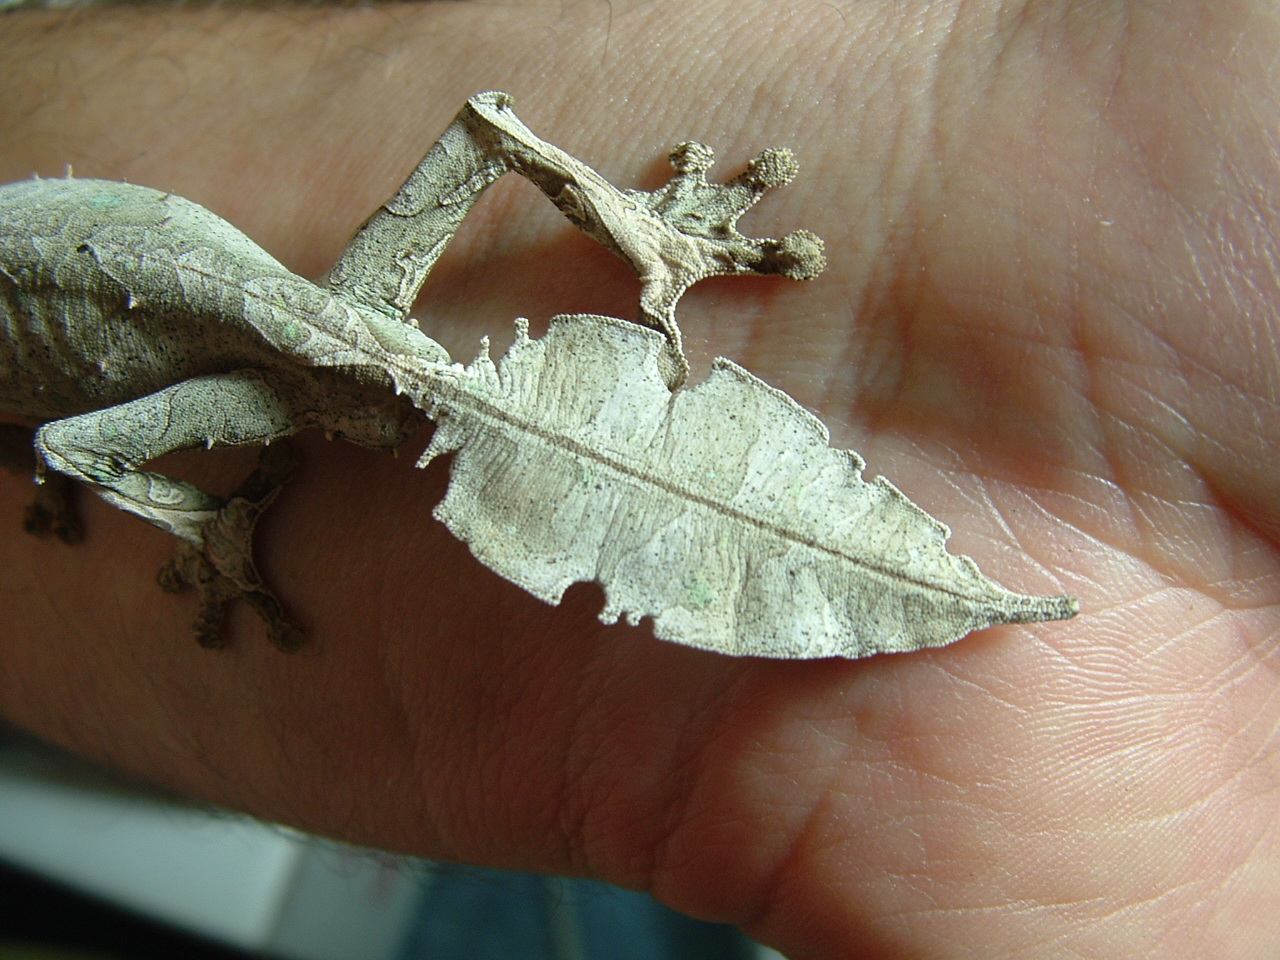 Leaf-tailed gecko tail.